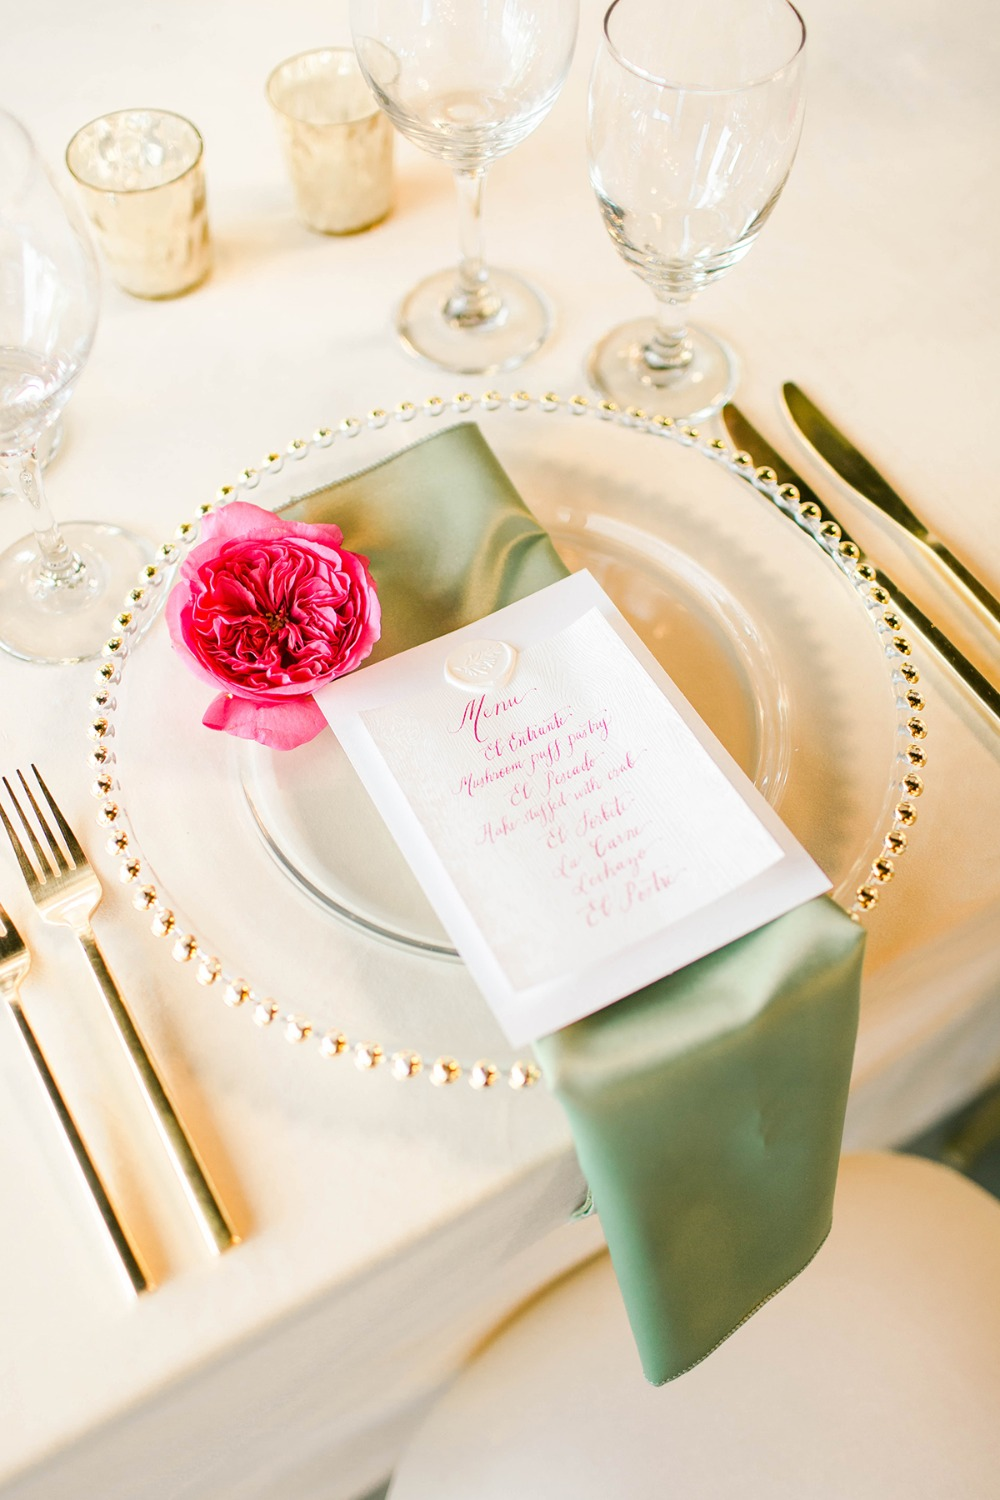 classic and chic wedding place setting